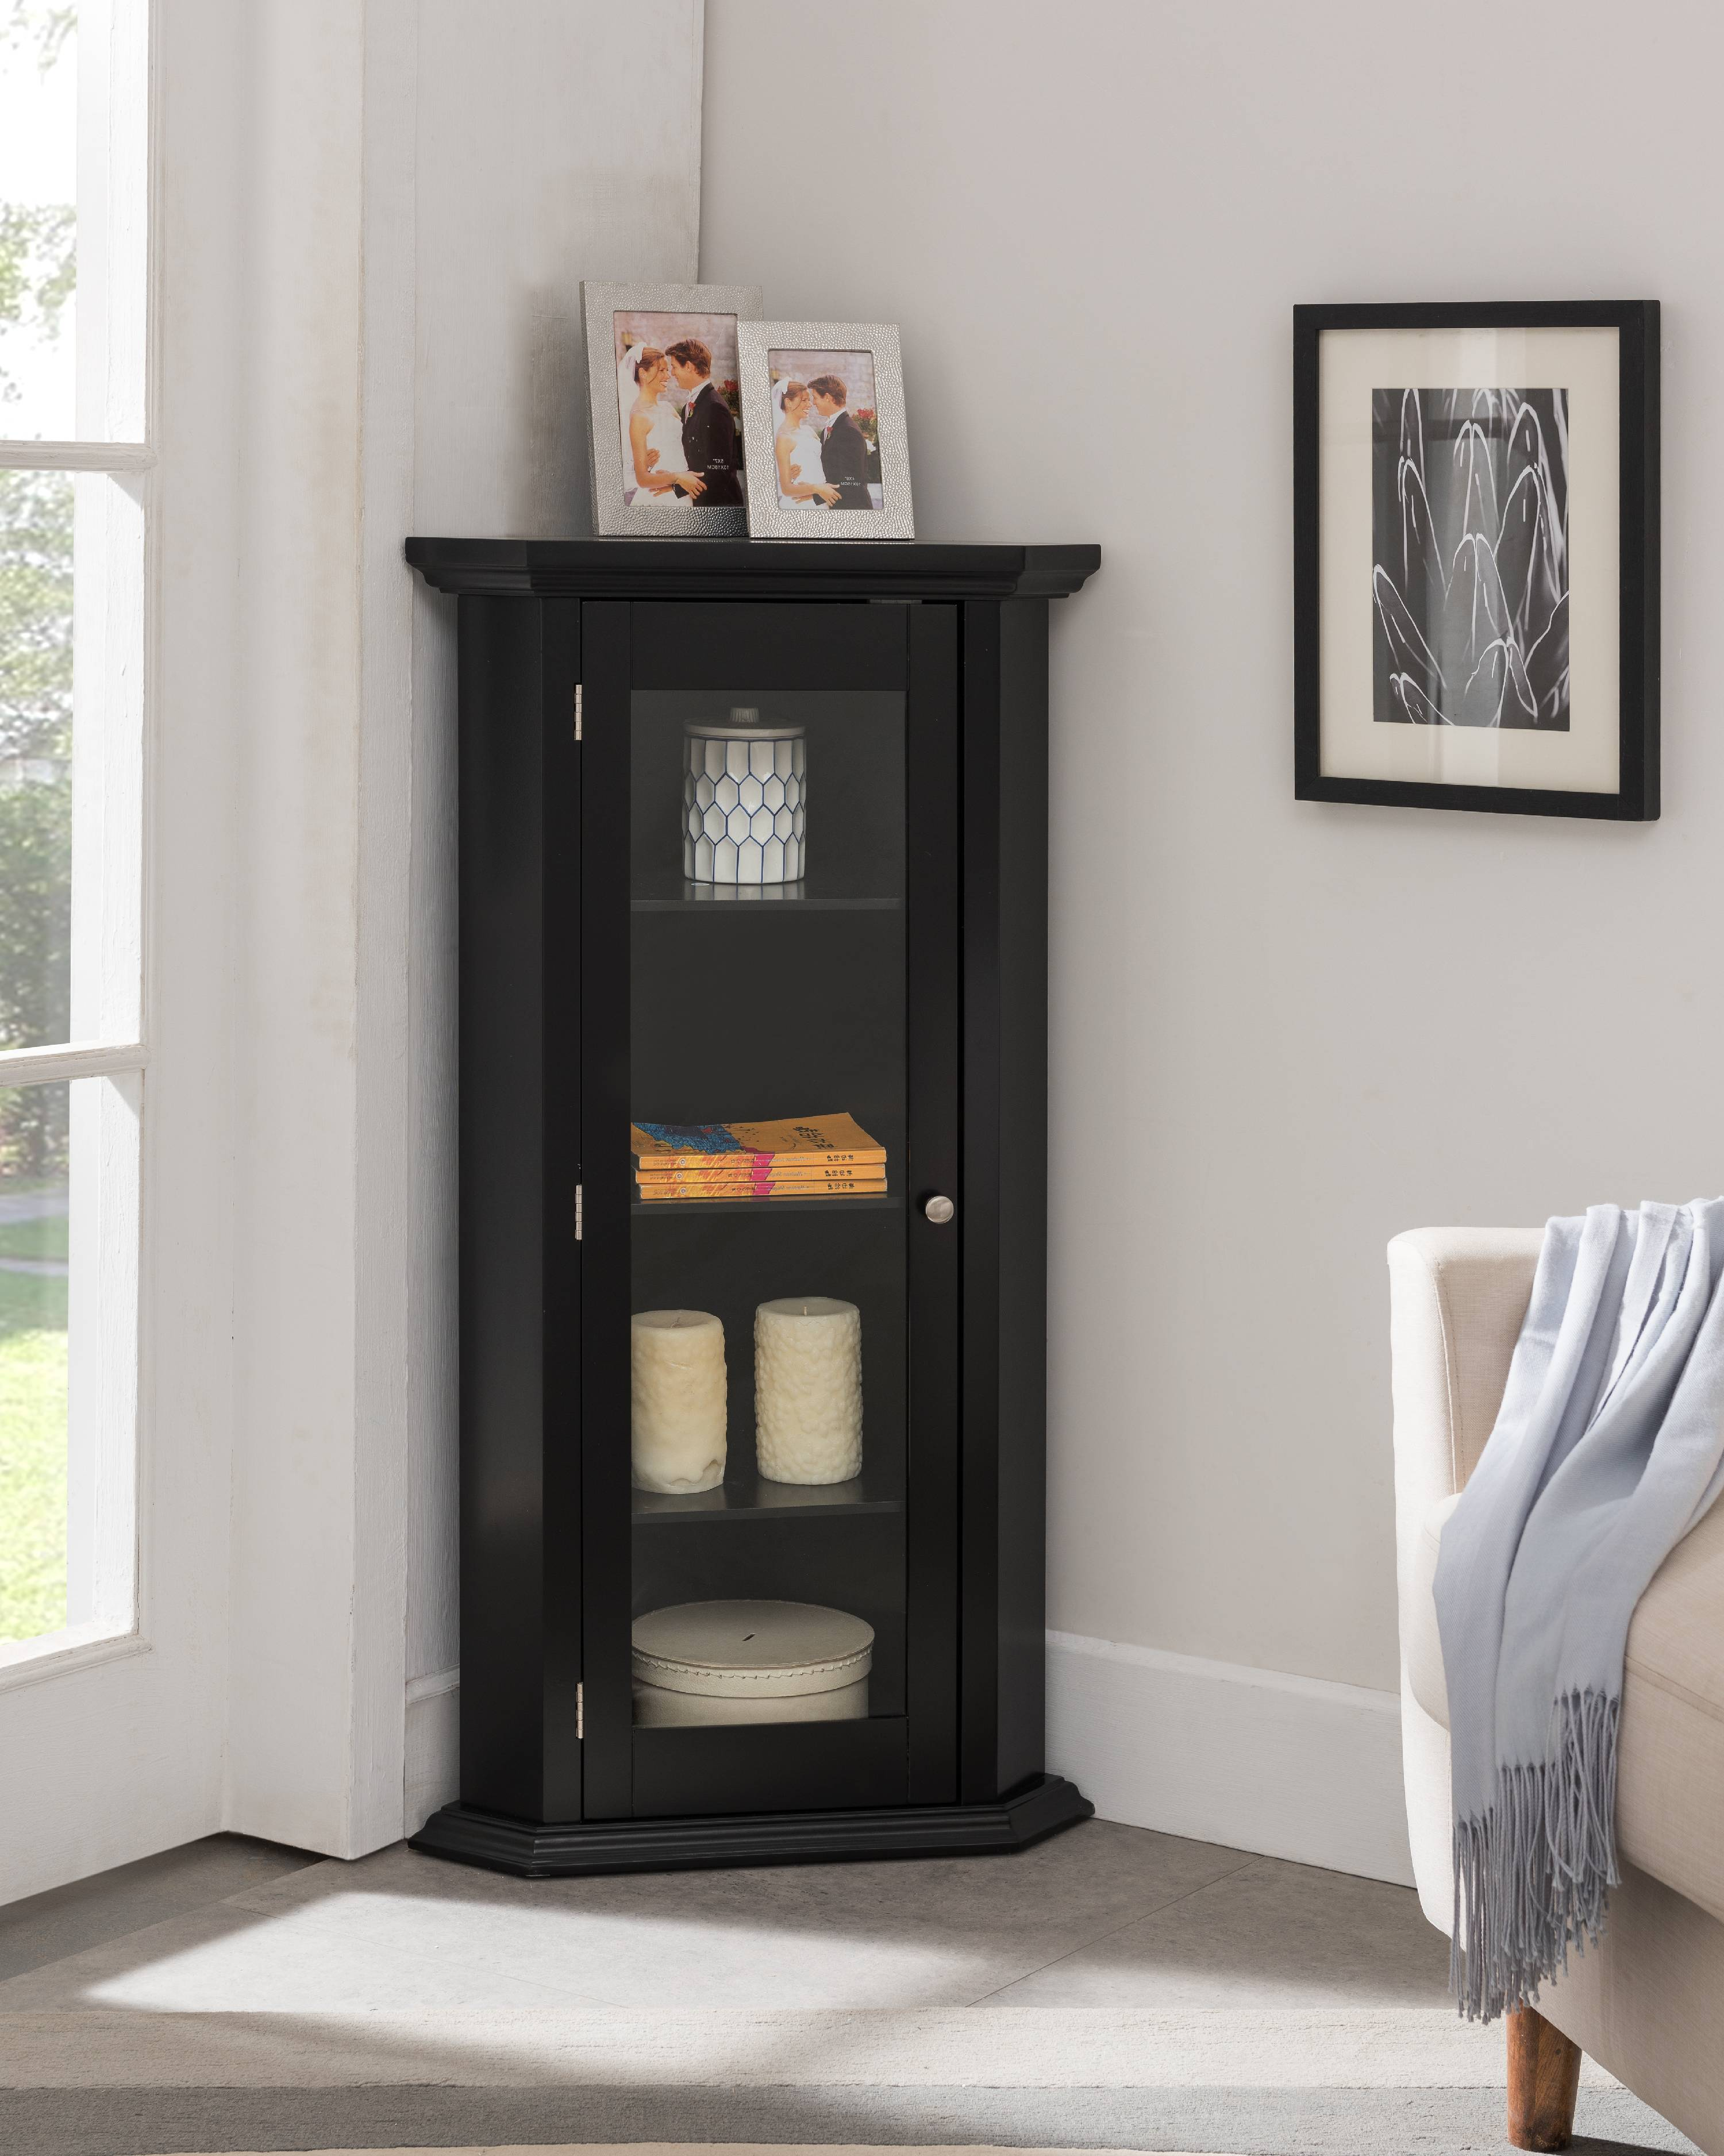 Didan Black Wood Contemporary Corner Curio Display Cabinet With 3 Storage Shelves Glass Doors